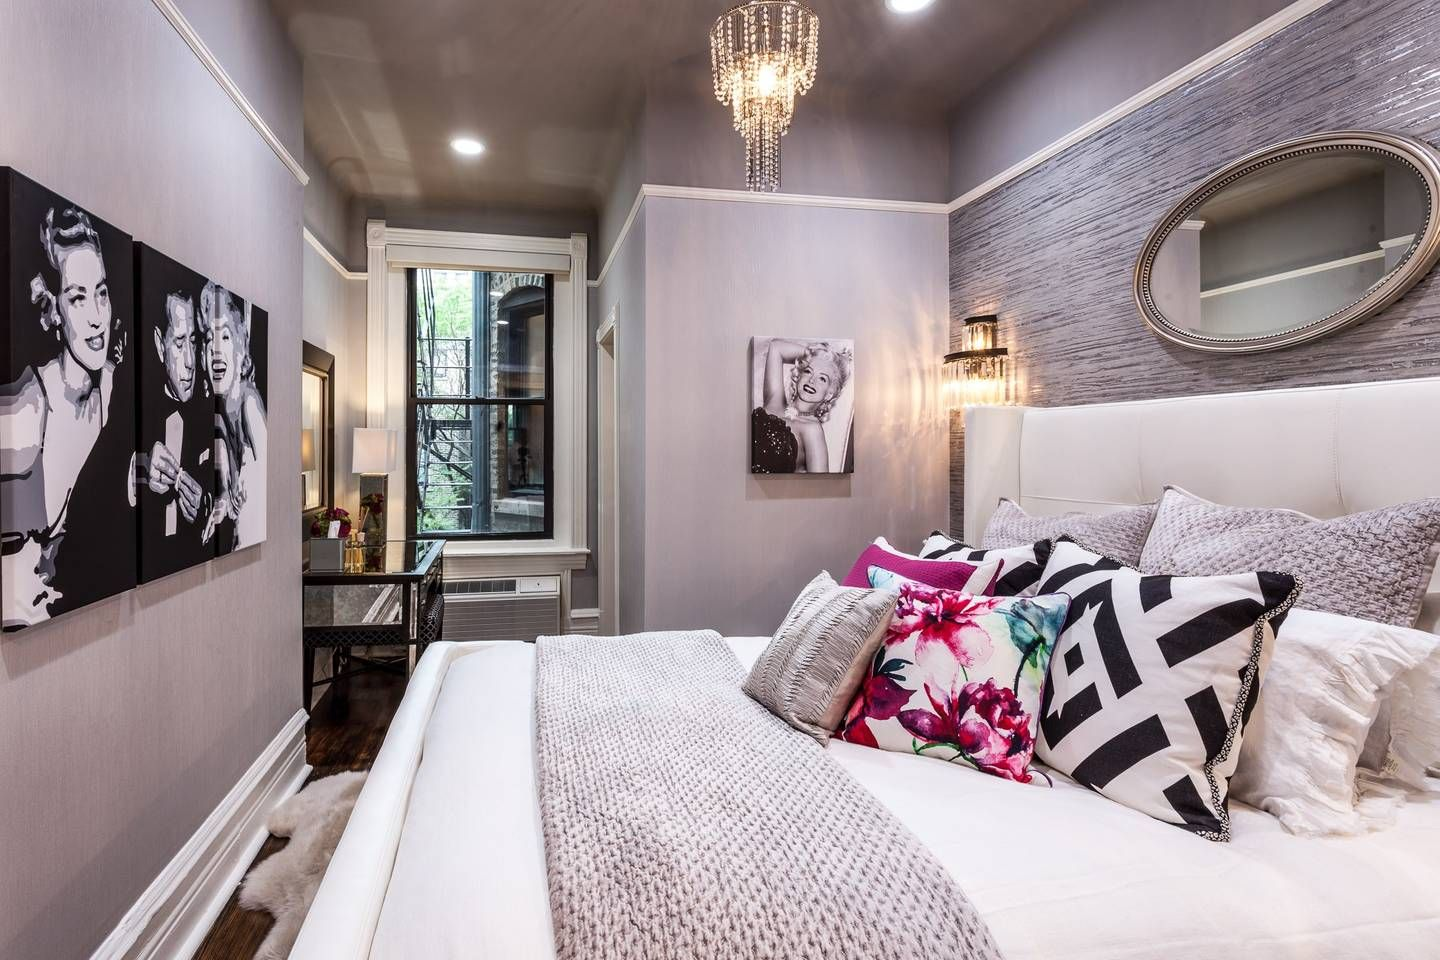 Marilyn Monroe One bedroom! Apartments for Rent in